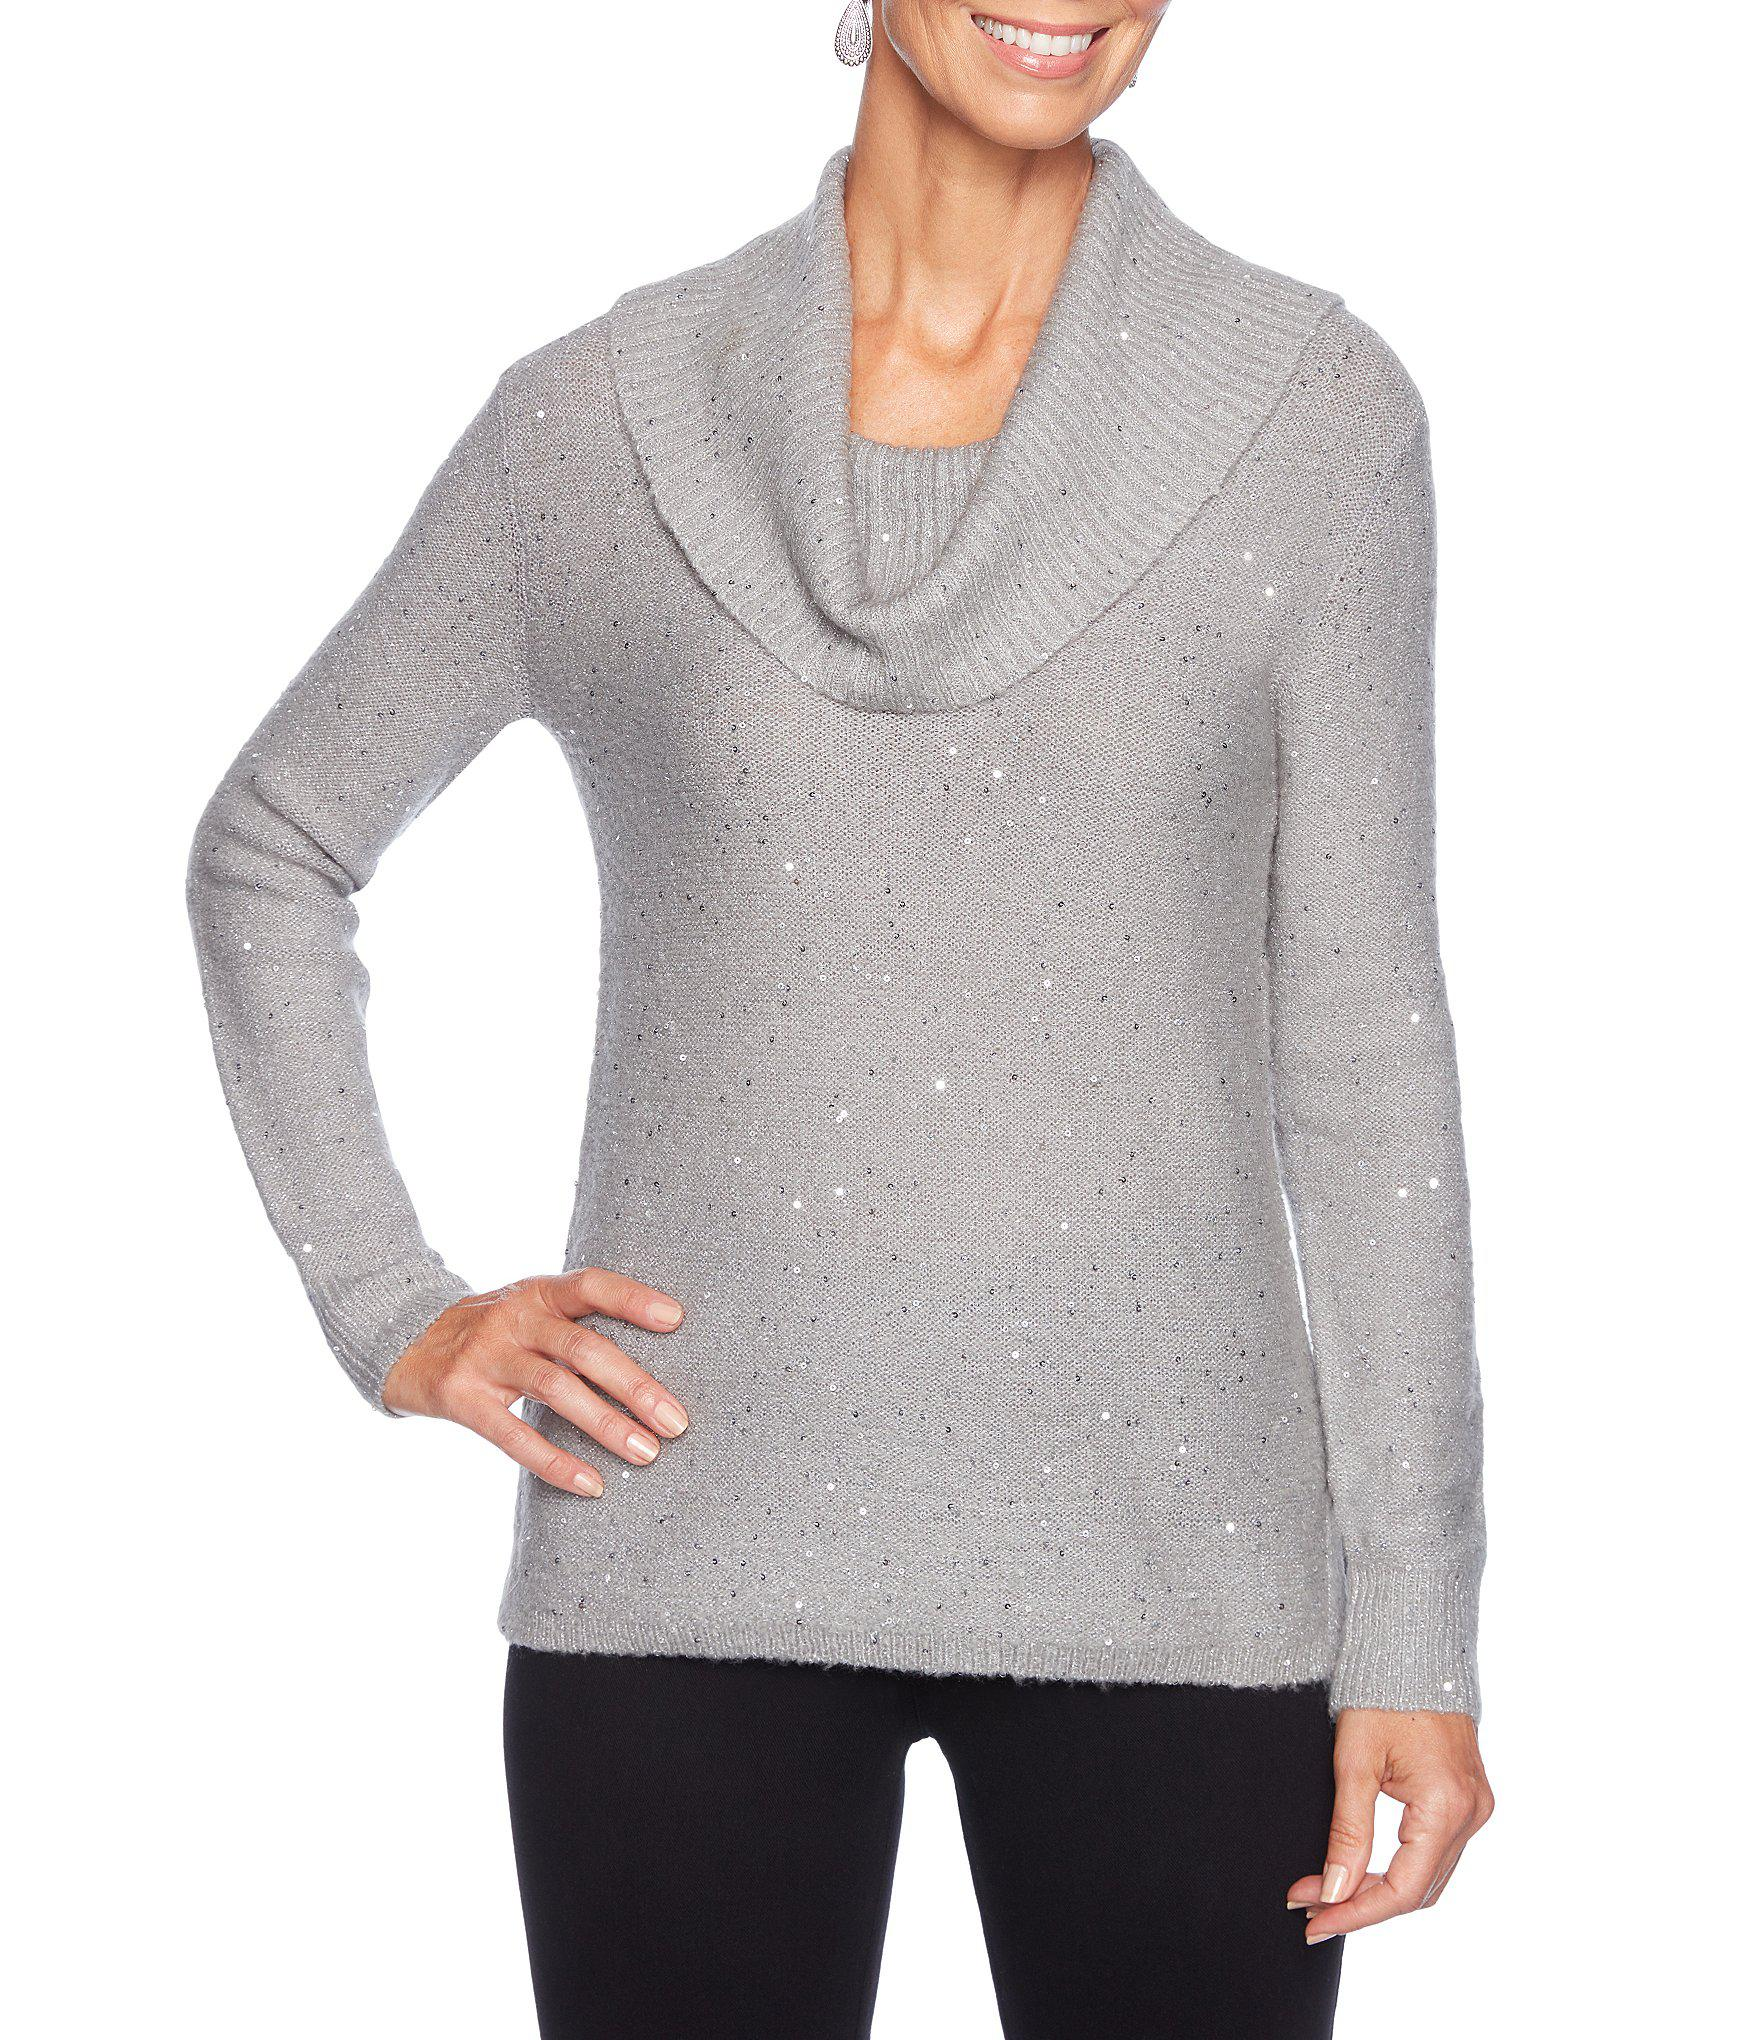 a64eac0828903 Lyst - Ruby Rd. Petite Size Cowl Neck Cozy Sequin Stretch Sweater ...